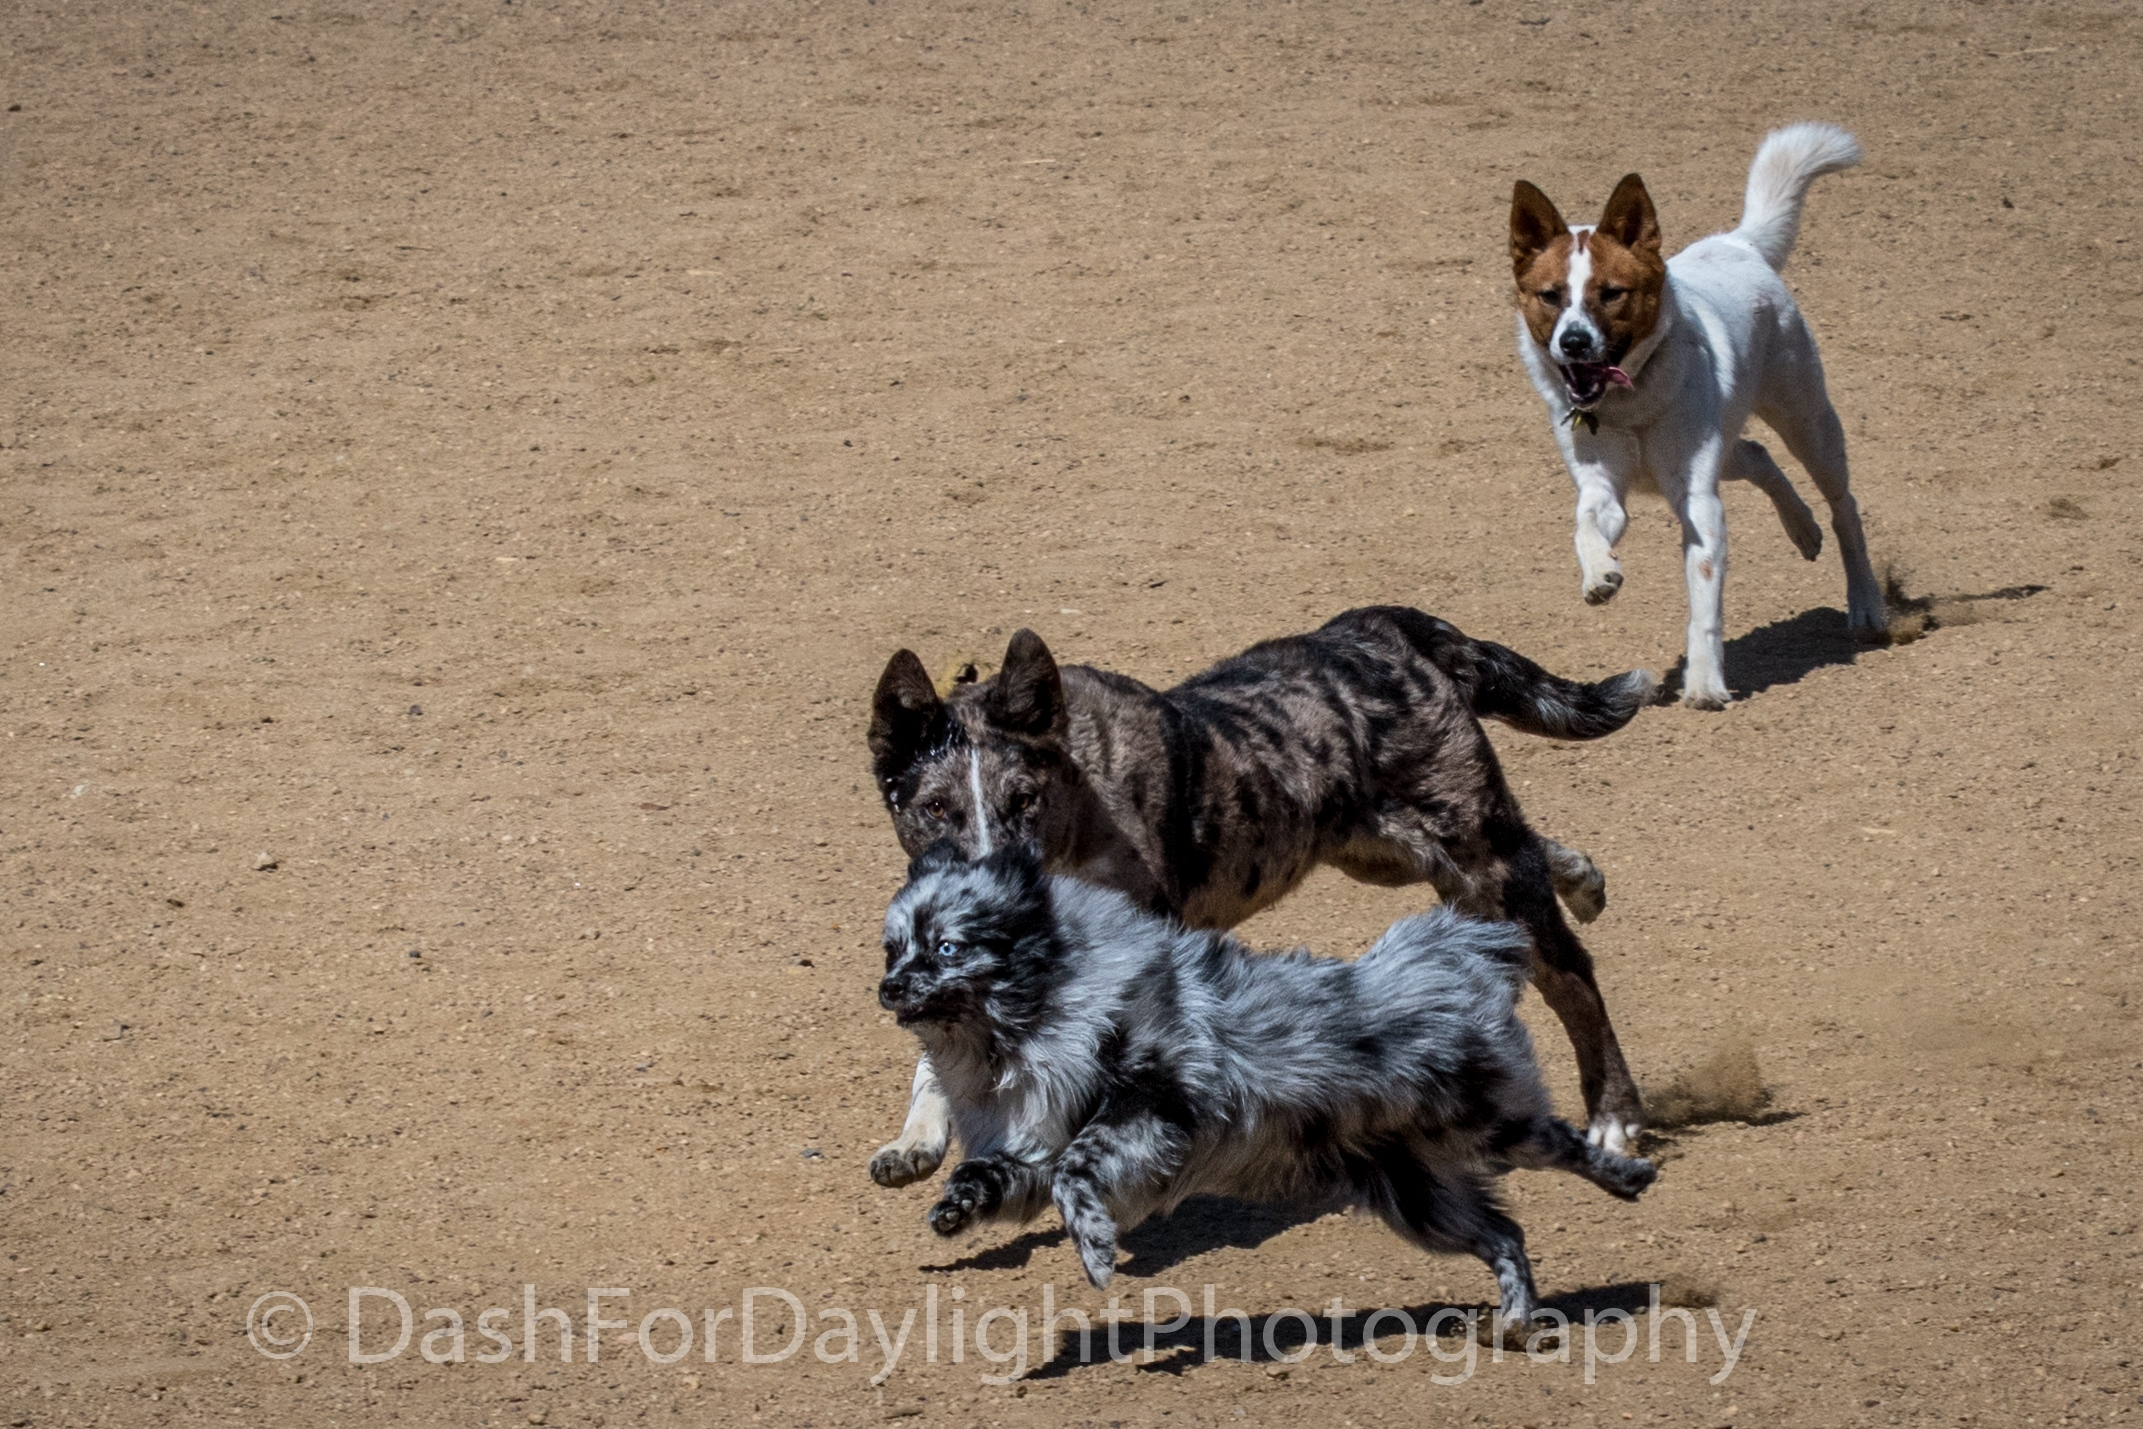 DSC_1388 Small Dogs Fly too